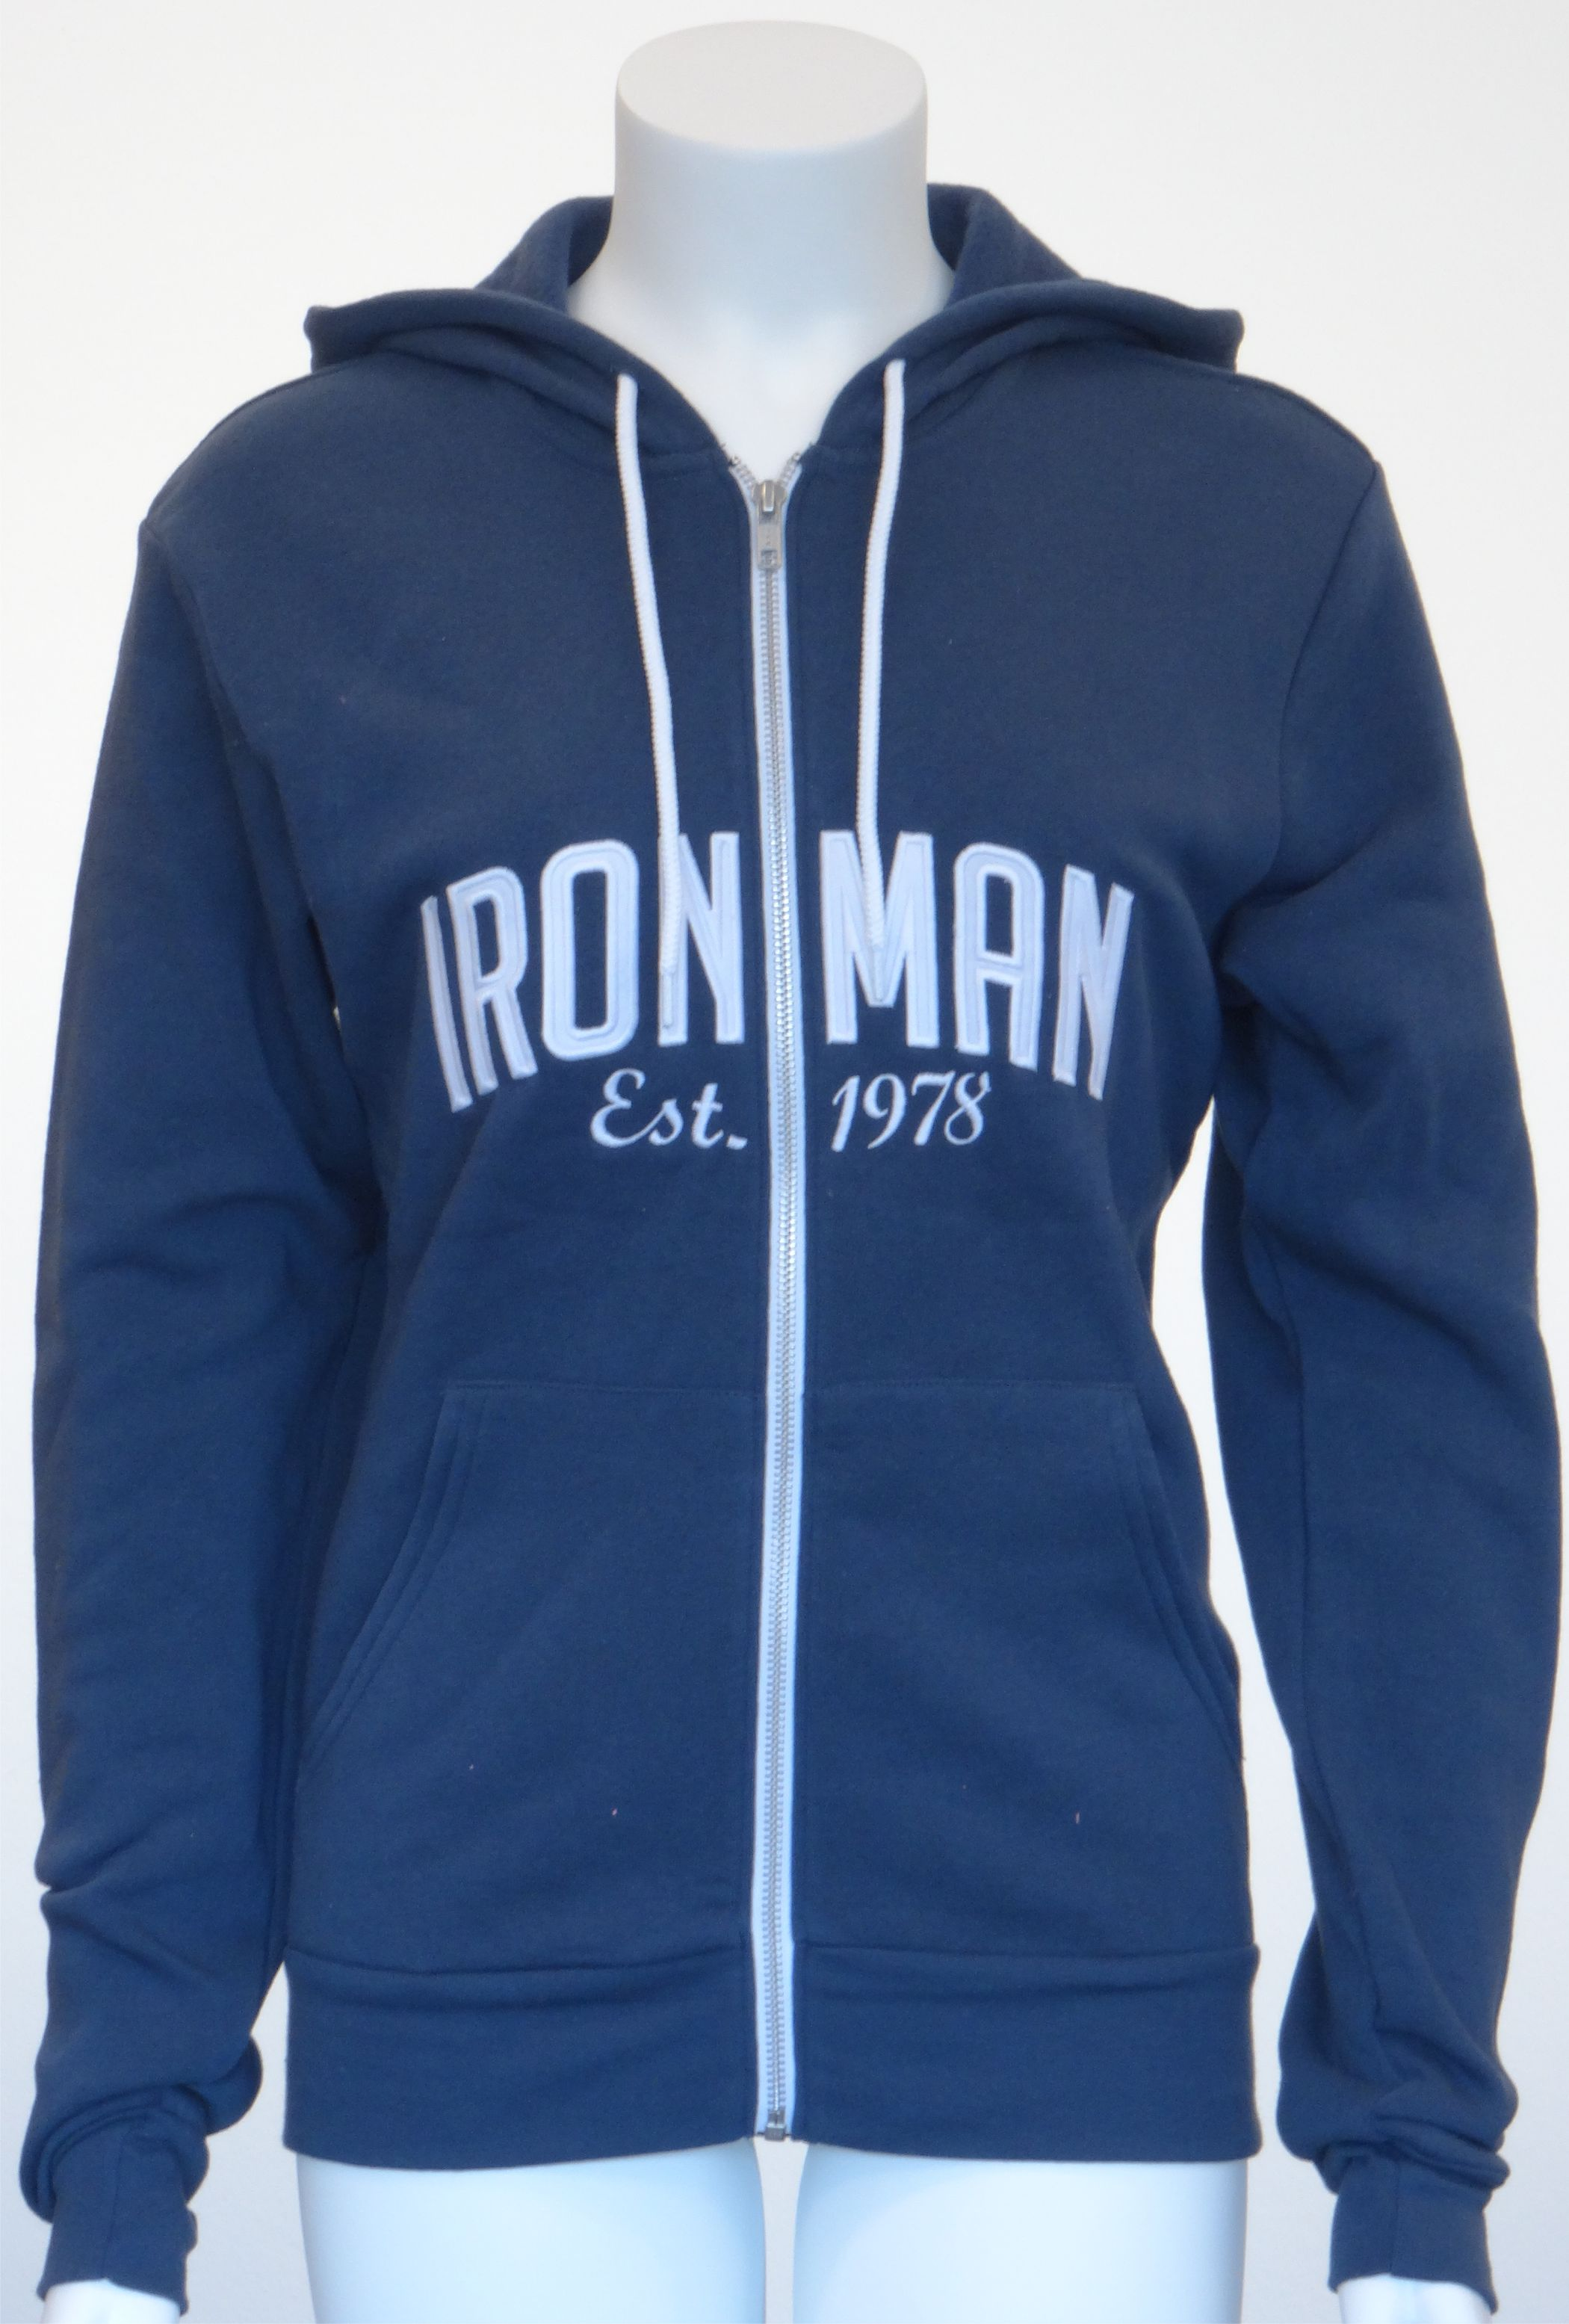 IRONMAN Vintage Full Zip Men's  Hoodie - navy